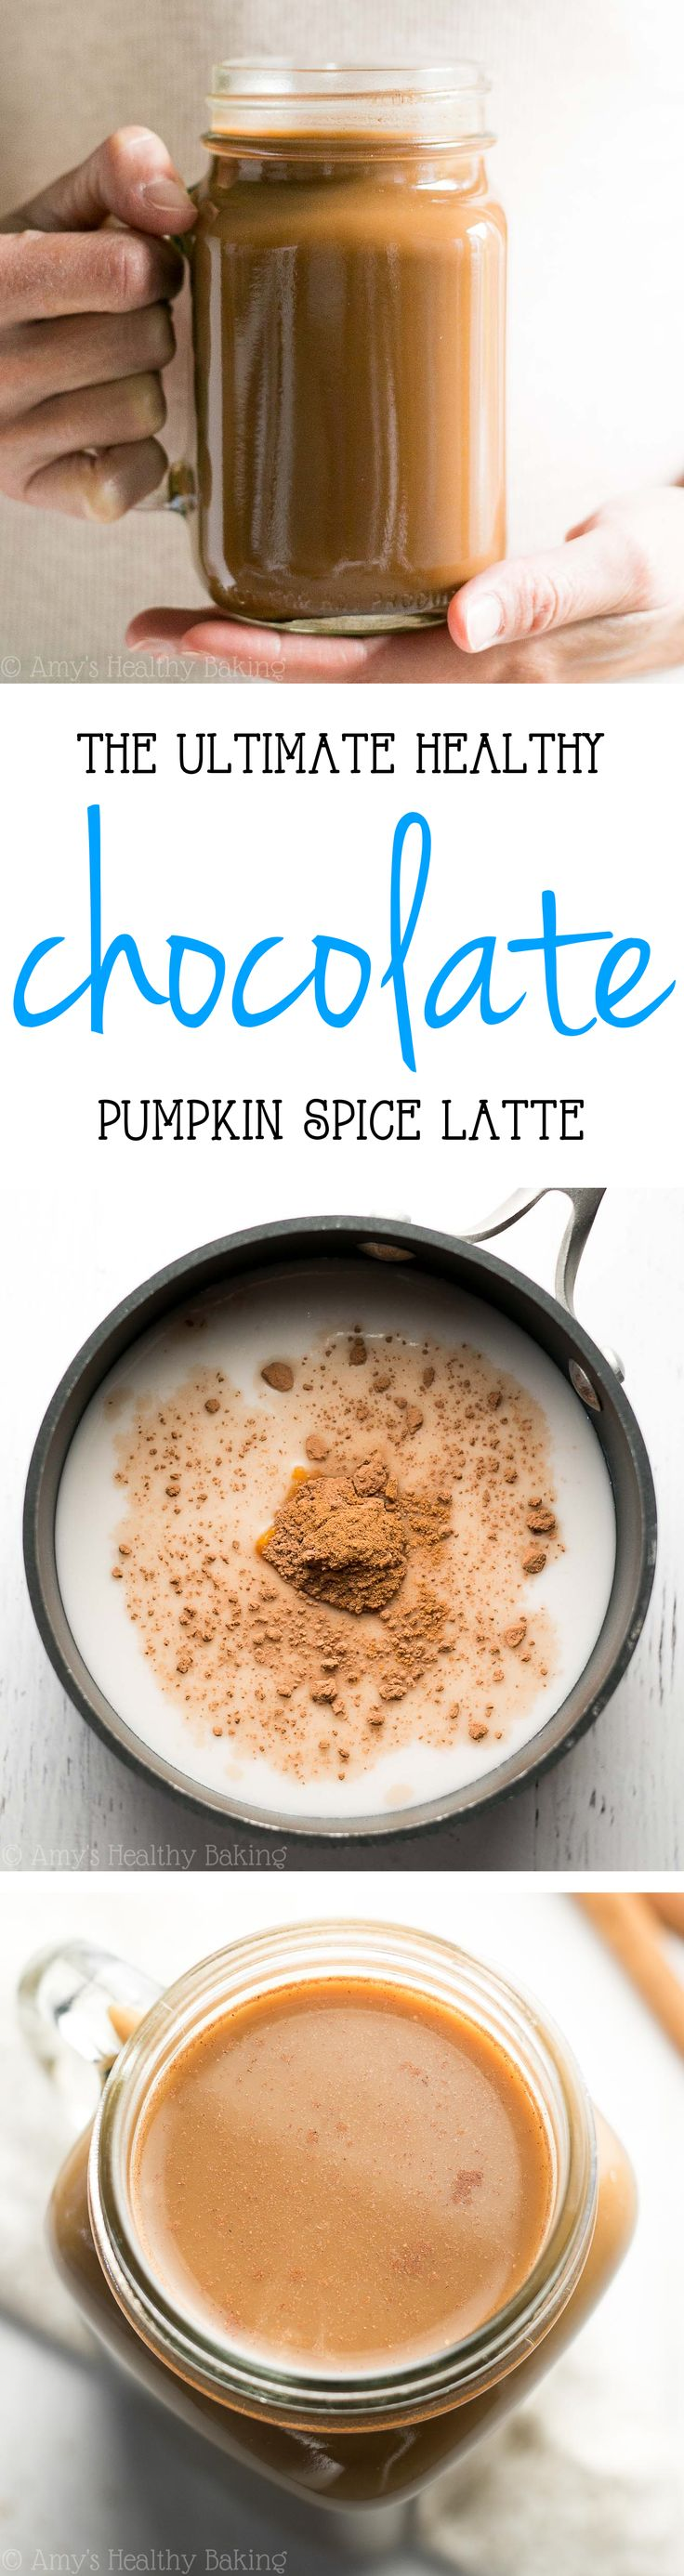 The Ultimate Healthy Chocolate Pumpkin Spice Latte -- a skinny copycat that tastes even better than the original! Just 32 calories & NO refined or artificial ingredients!